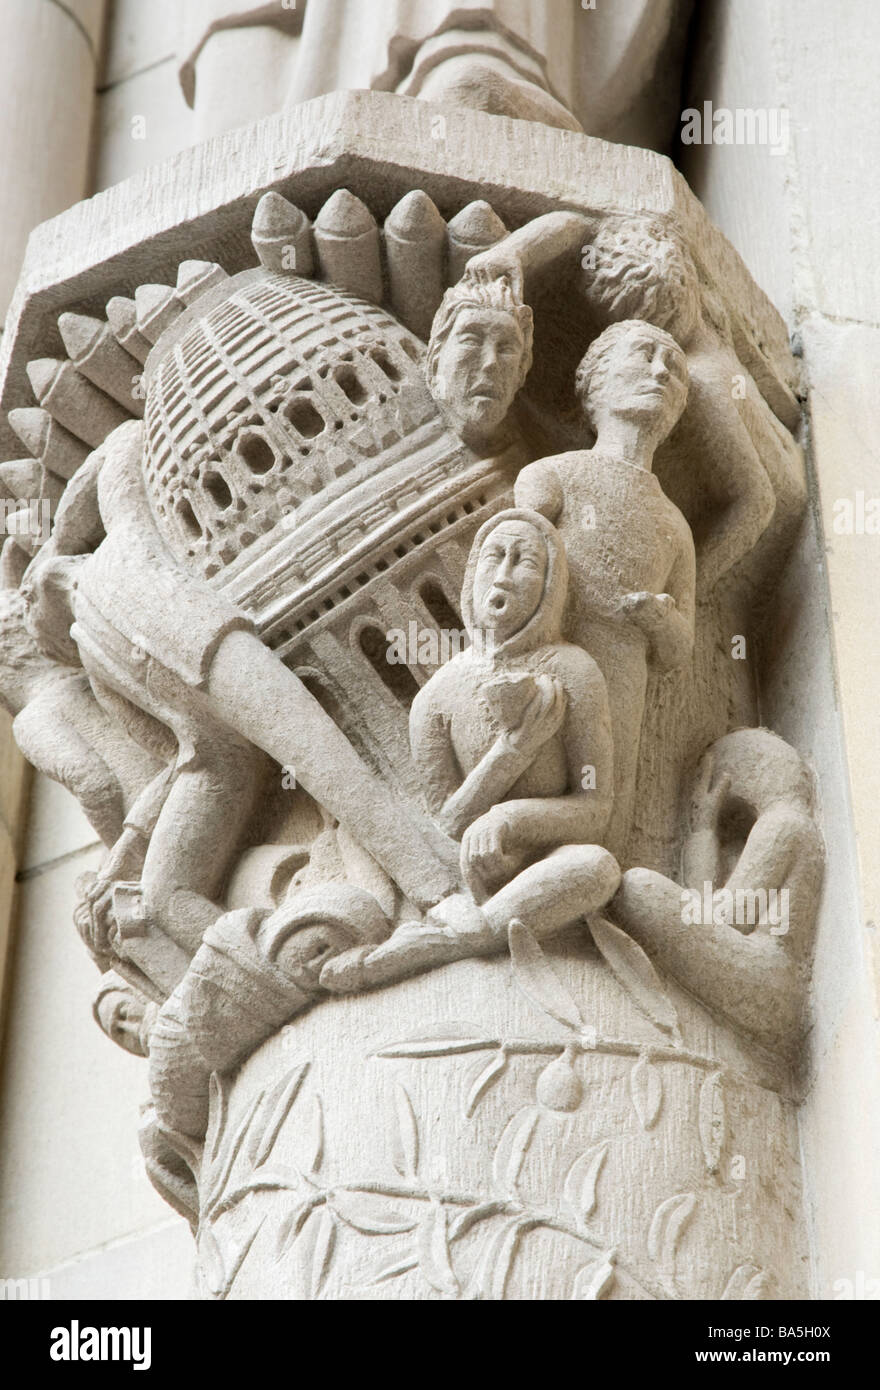 Architectural Detail from Cathedral of St John the Divine in New York City - Stock Image